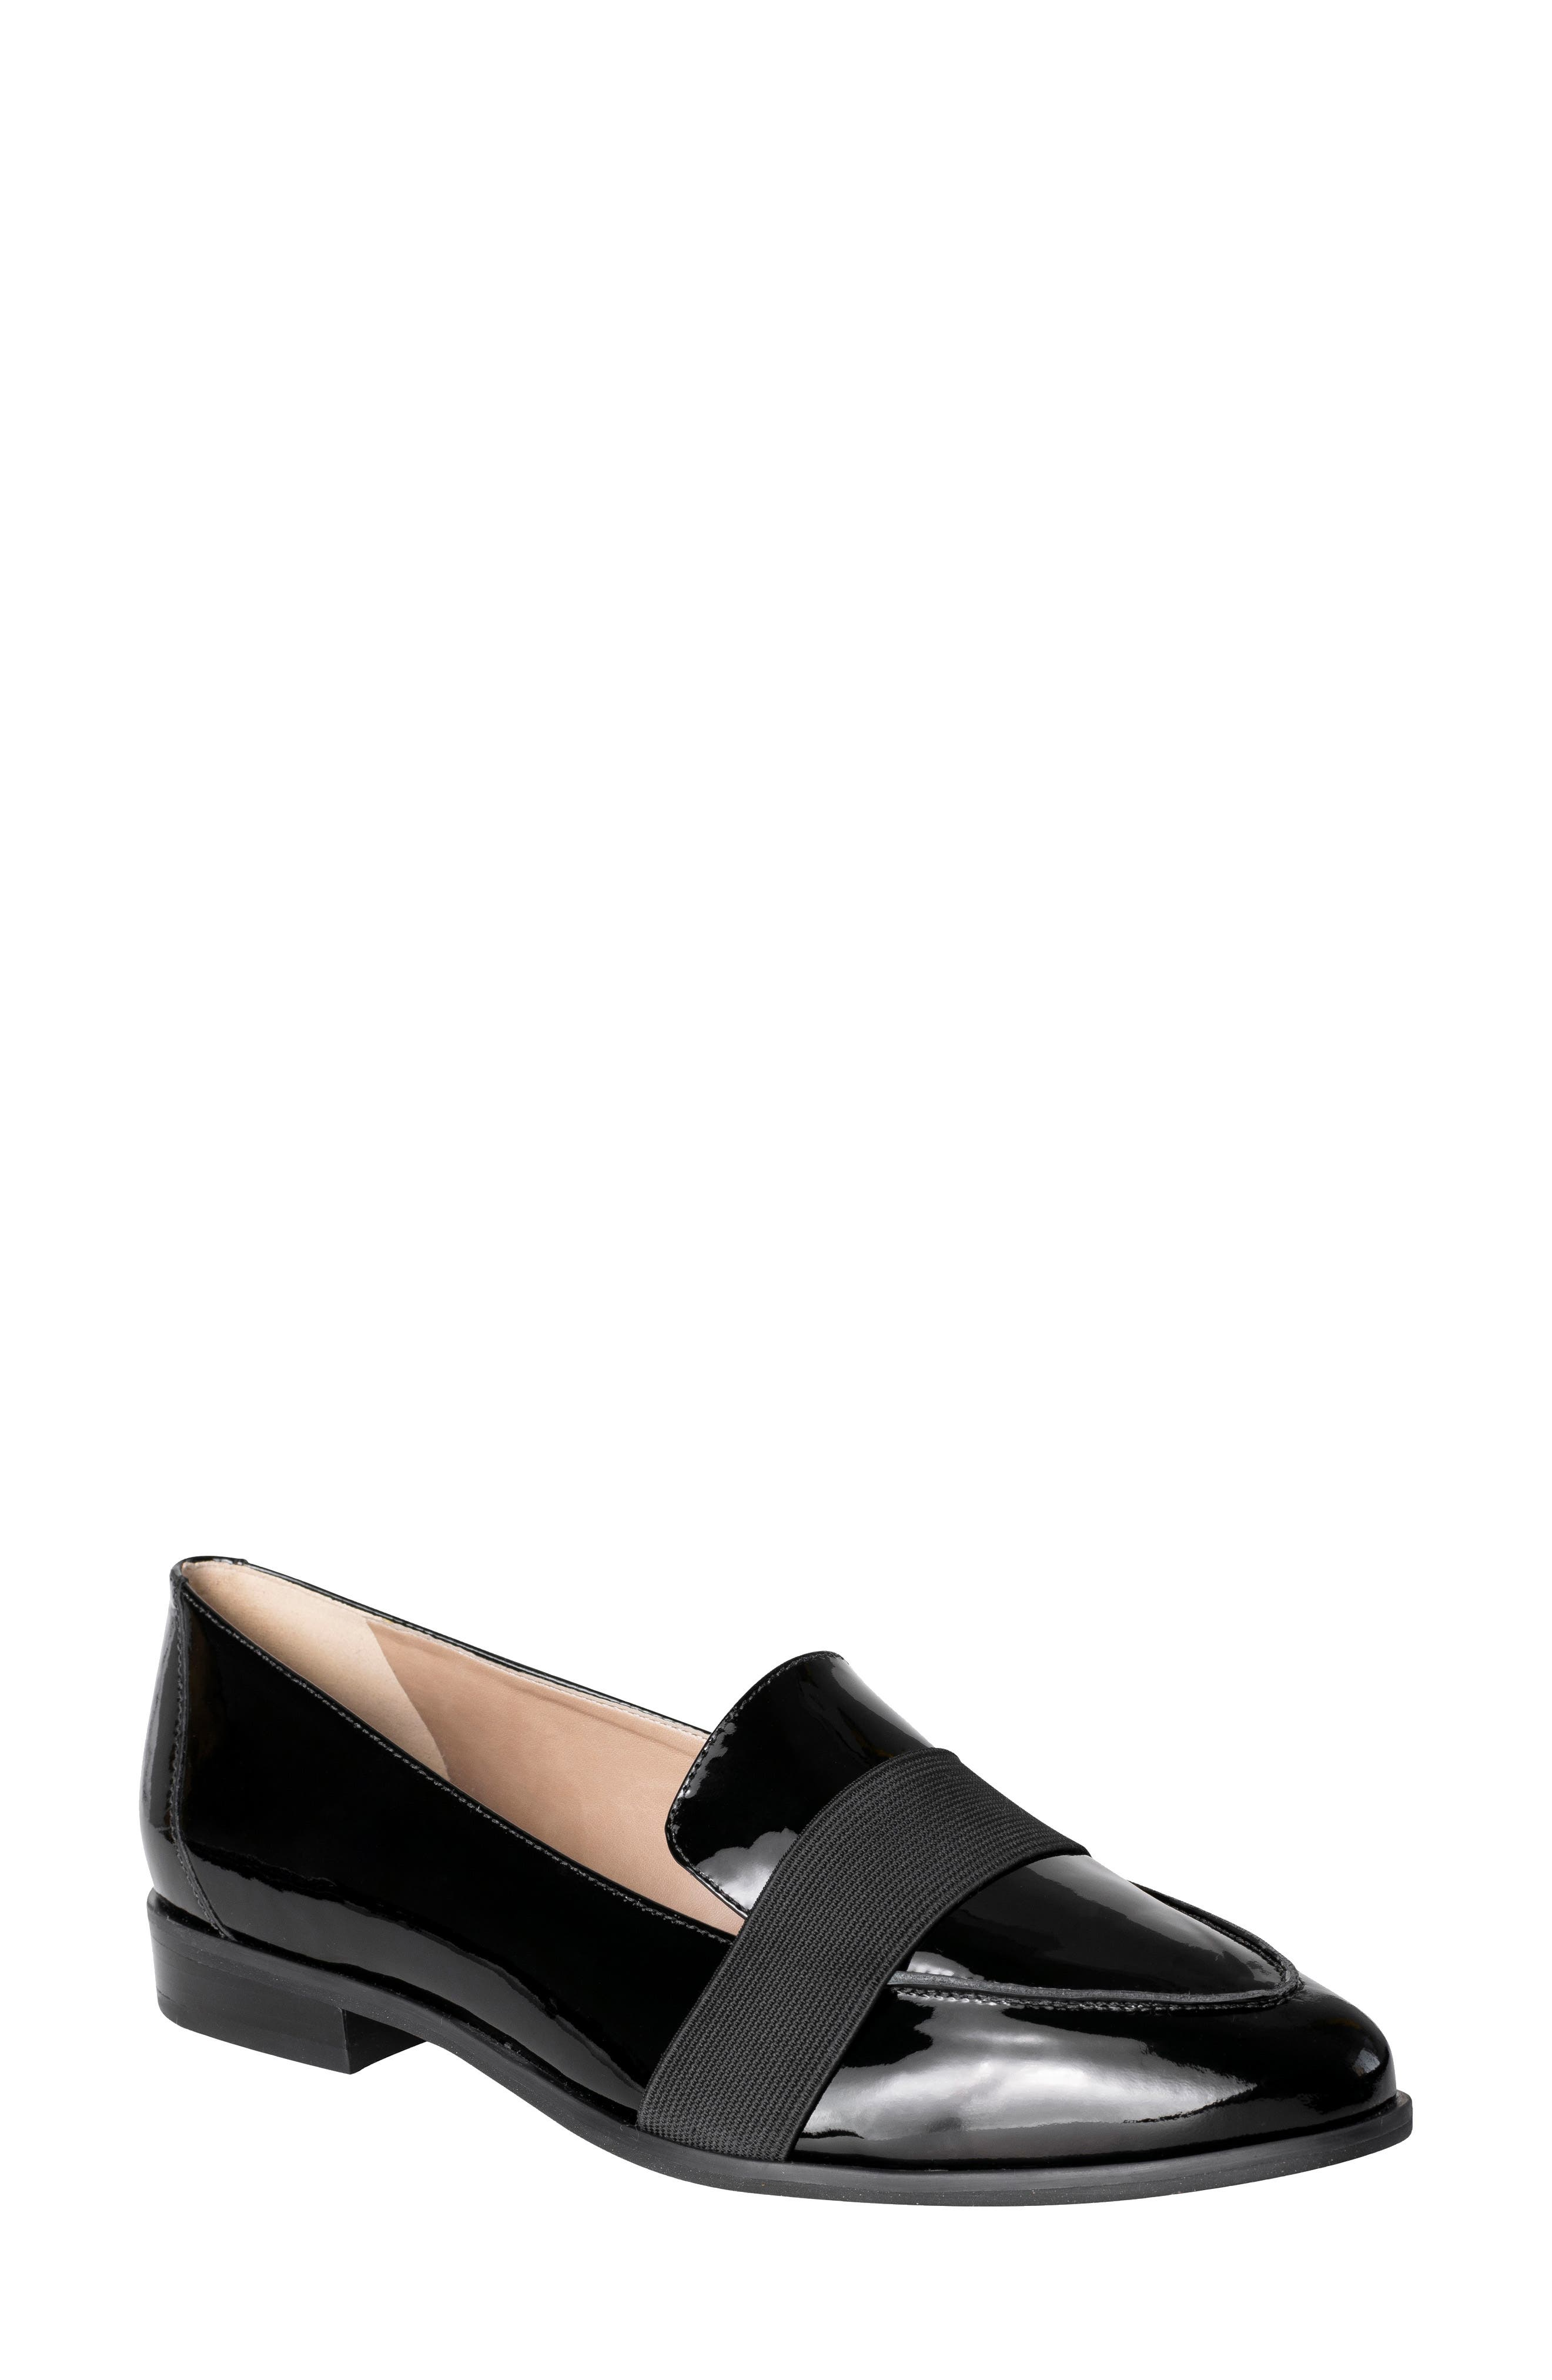 Debbie Loafer,                             Main thumbnail 1, color,                             BLACK PATENT LEATHER